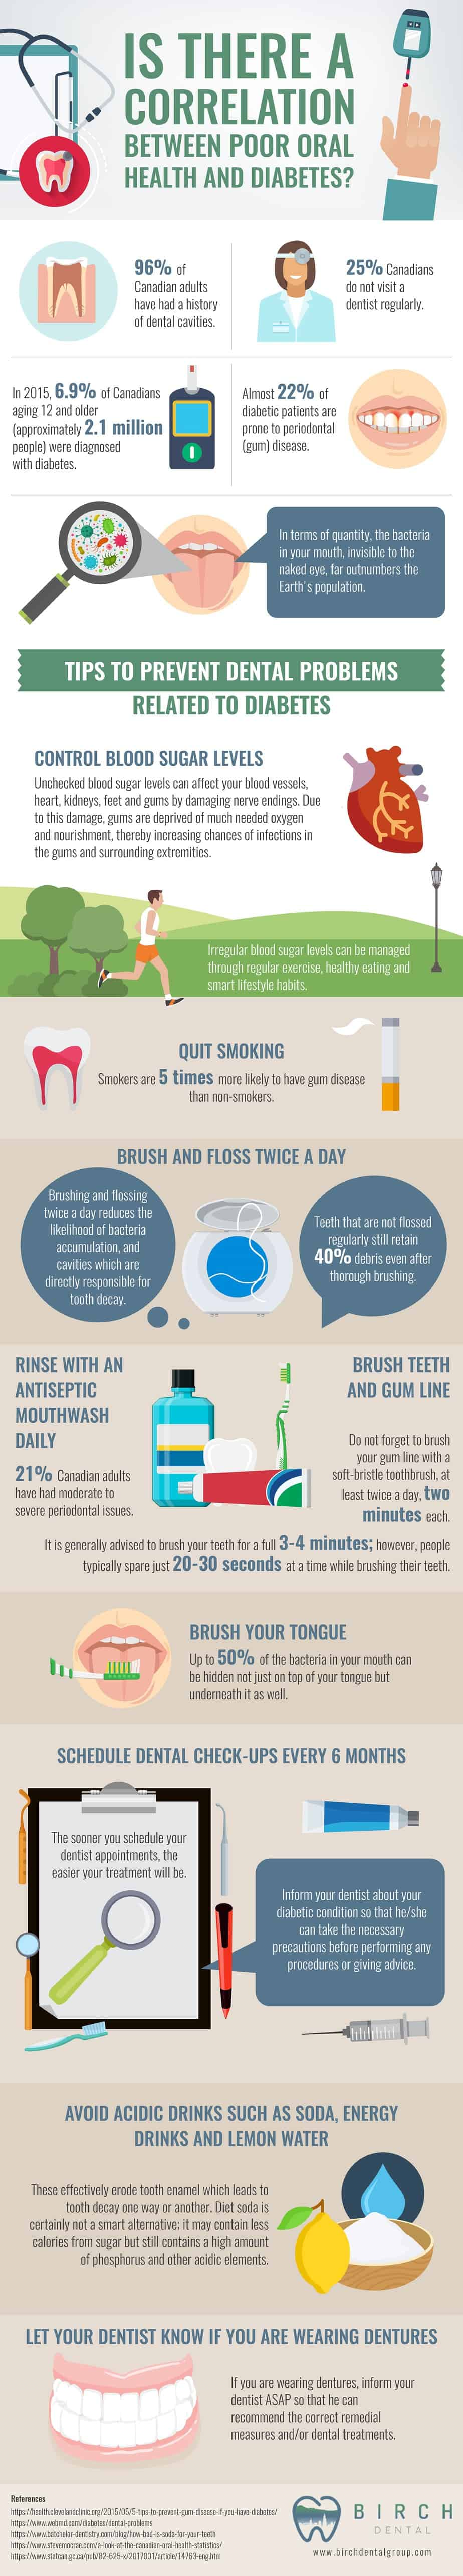 Correlation Between Oral Health & Diabetes